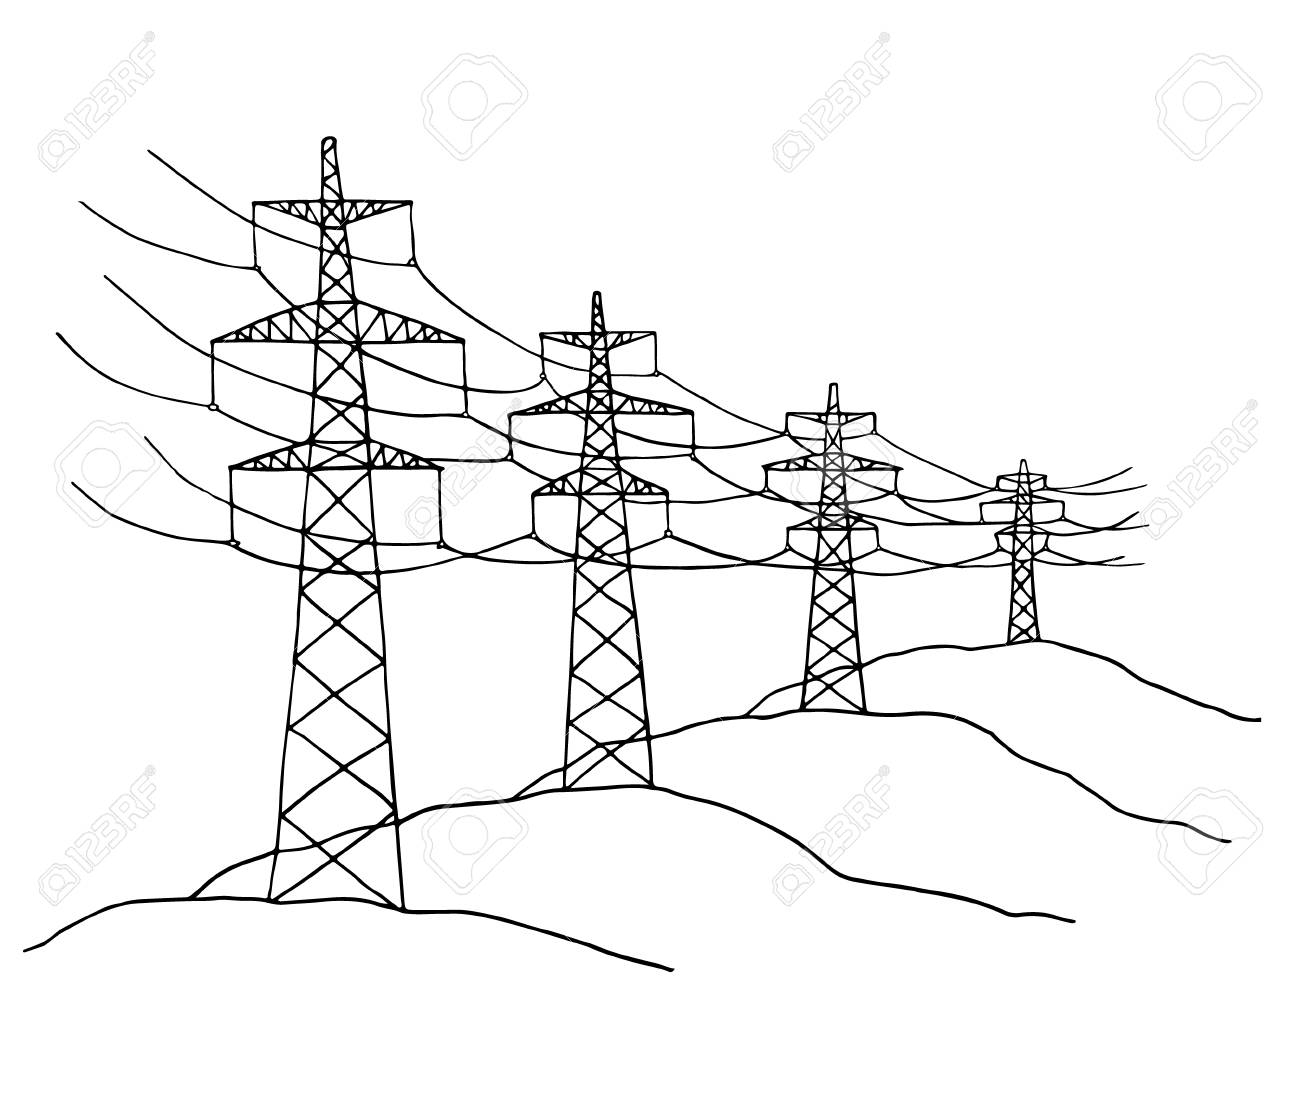 Electrical Energy Drawing At Getdrawings